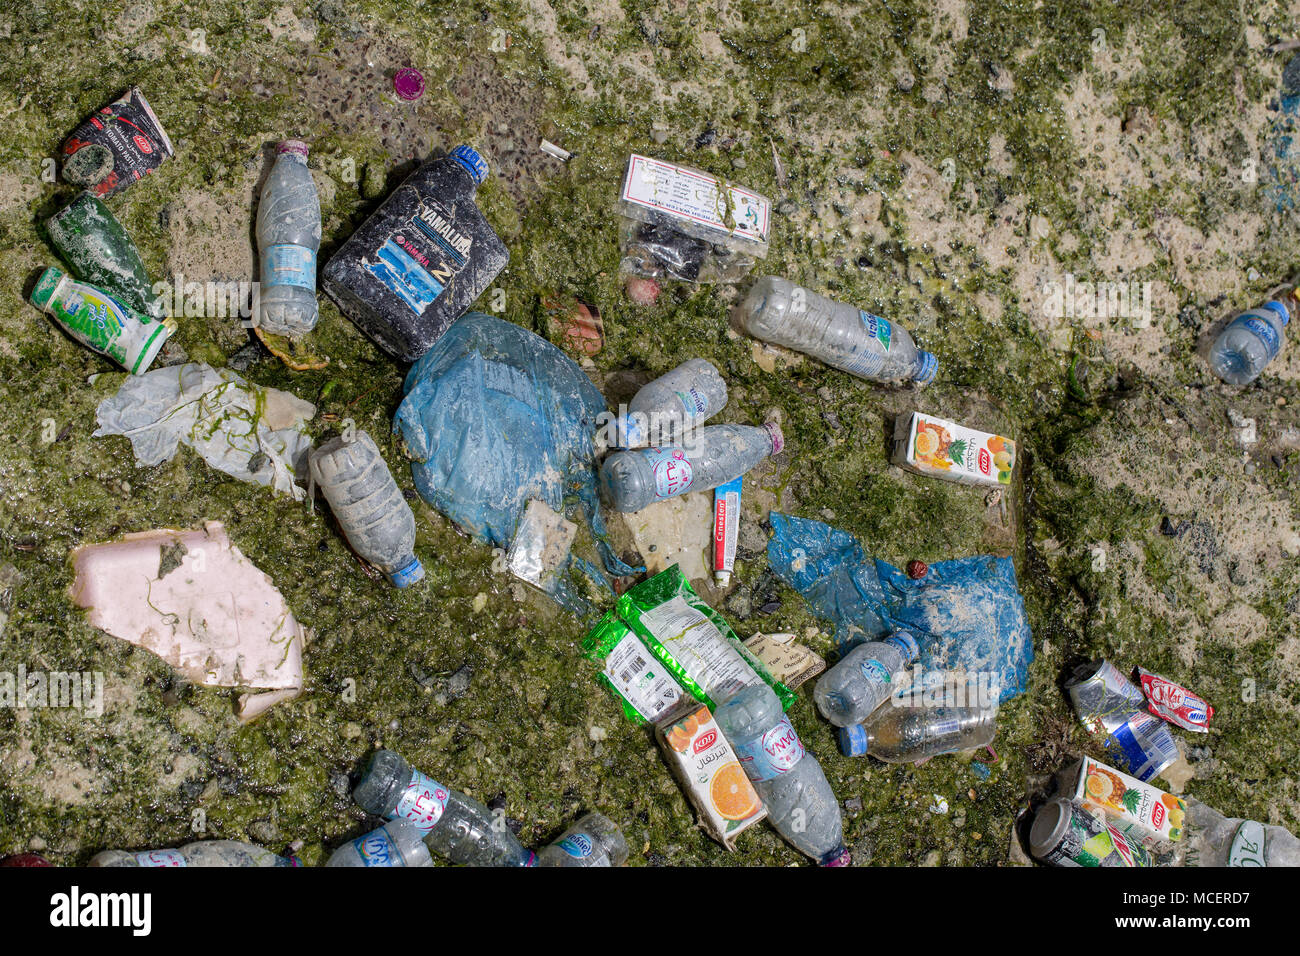 DOHA BAY, QATAR - April 16, 2018: Detritus left behind in Doha Bay, Qatar, by the outgoing tide - a mixture of plastic, metal and paper - Stock Image